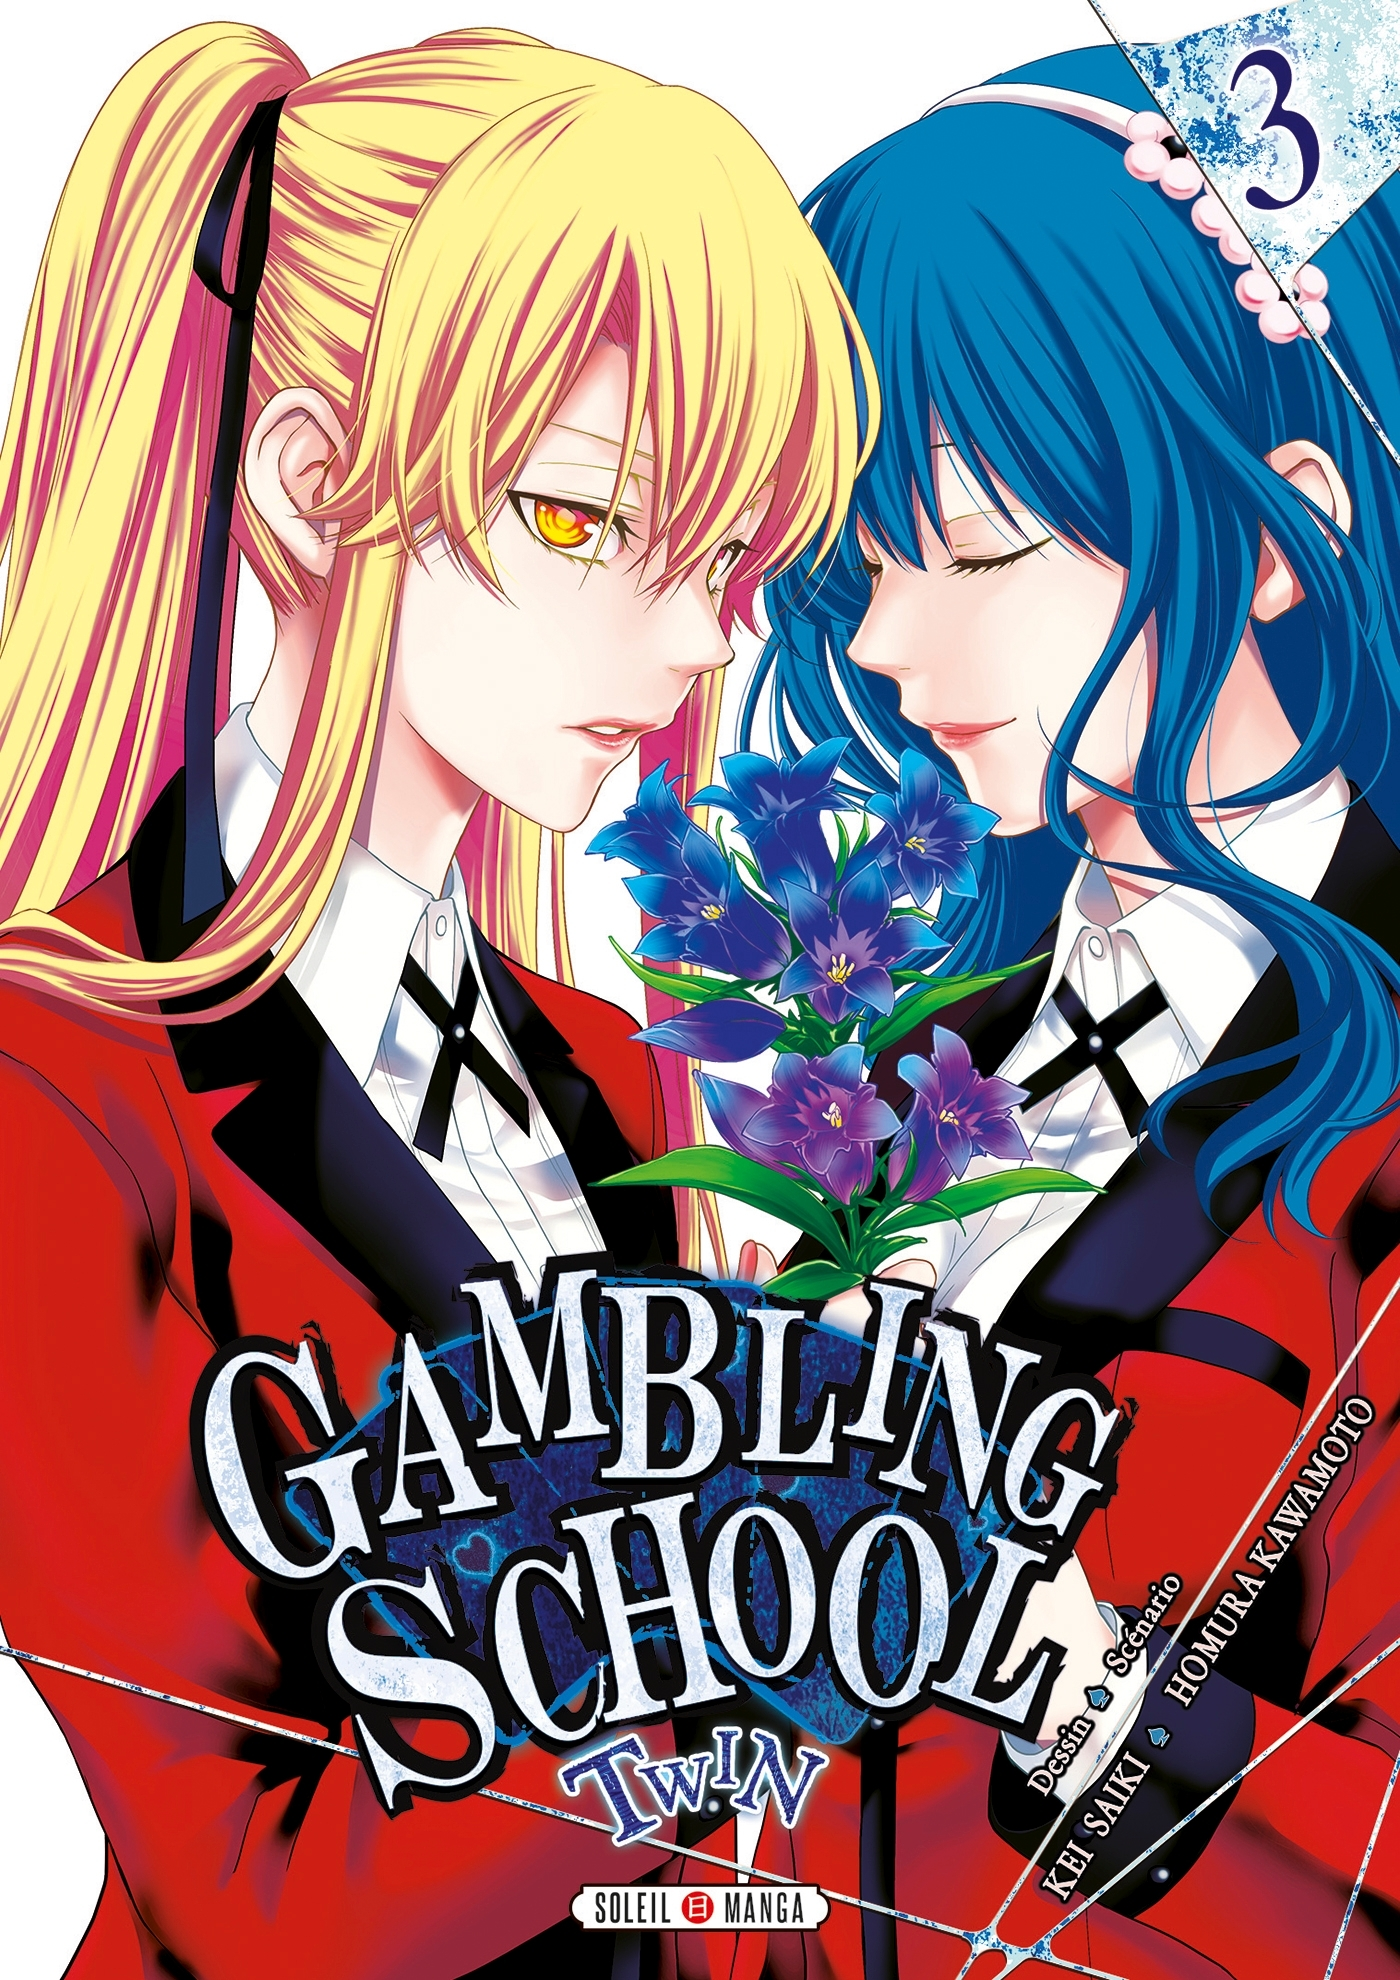 GAMBLING SCHOOL TWIN 03 - T3